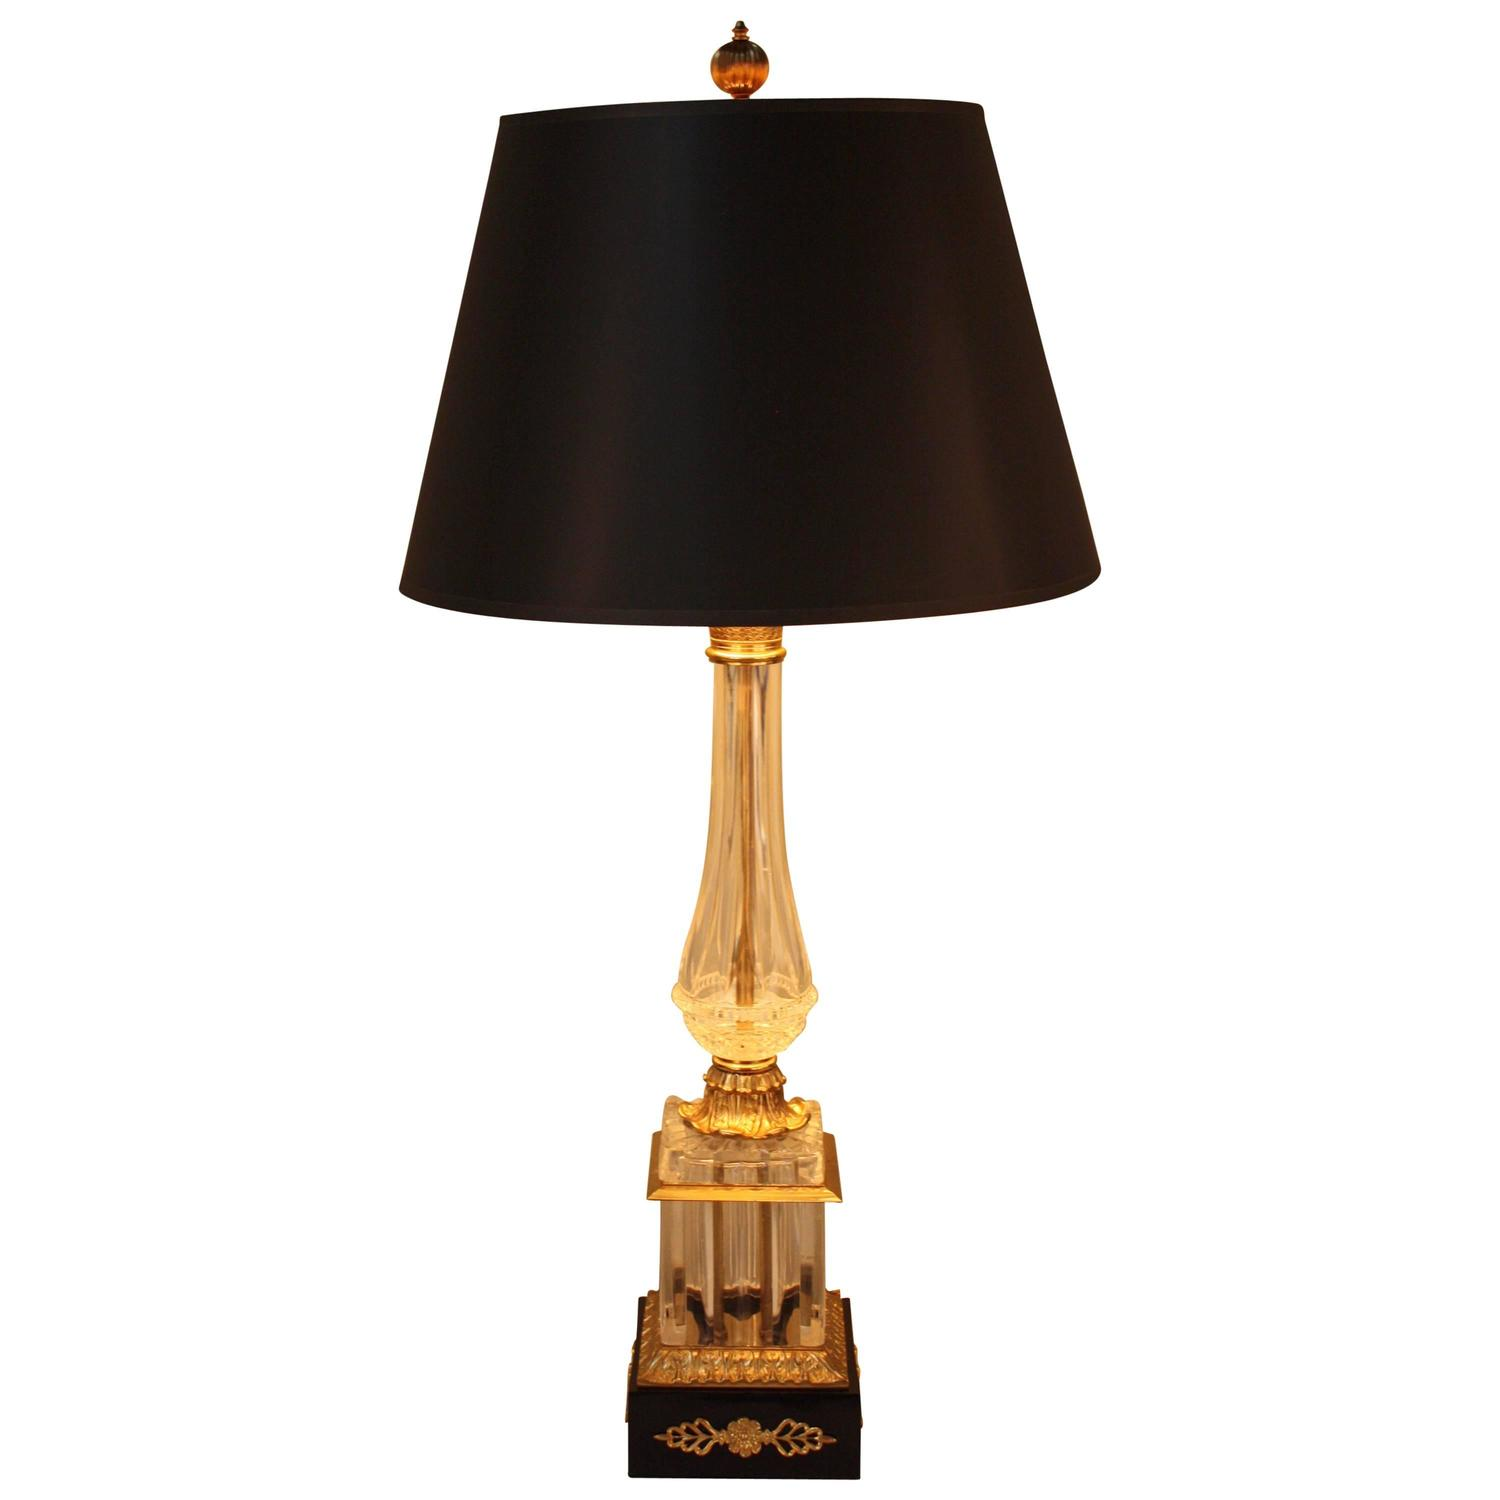 French Empire Style Crystal Table Lamp For Sale at 1stdibs